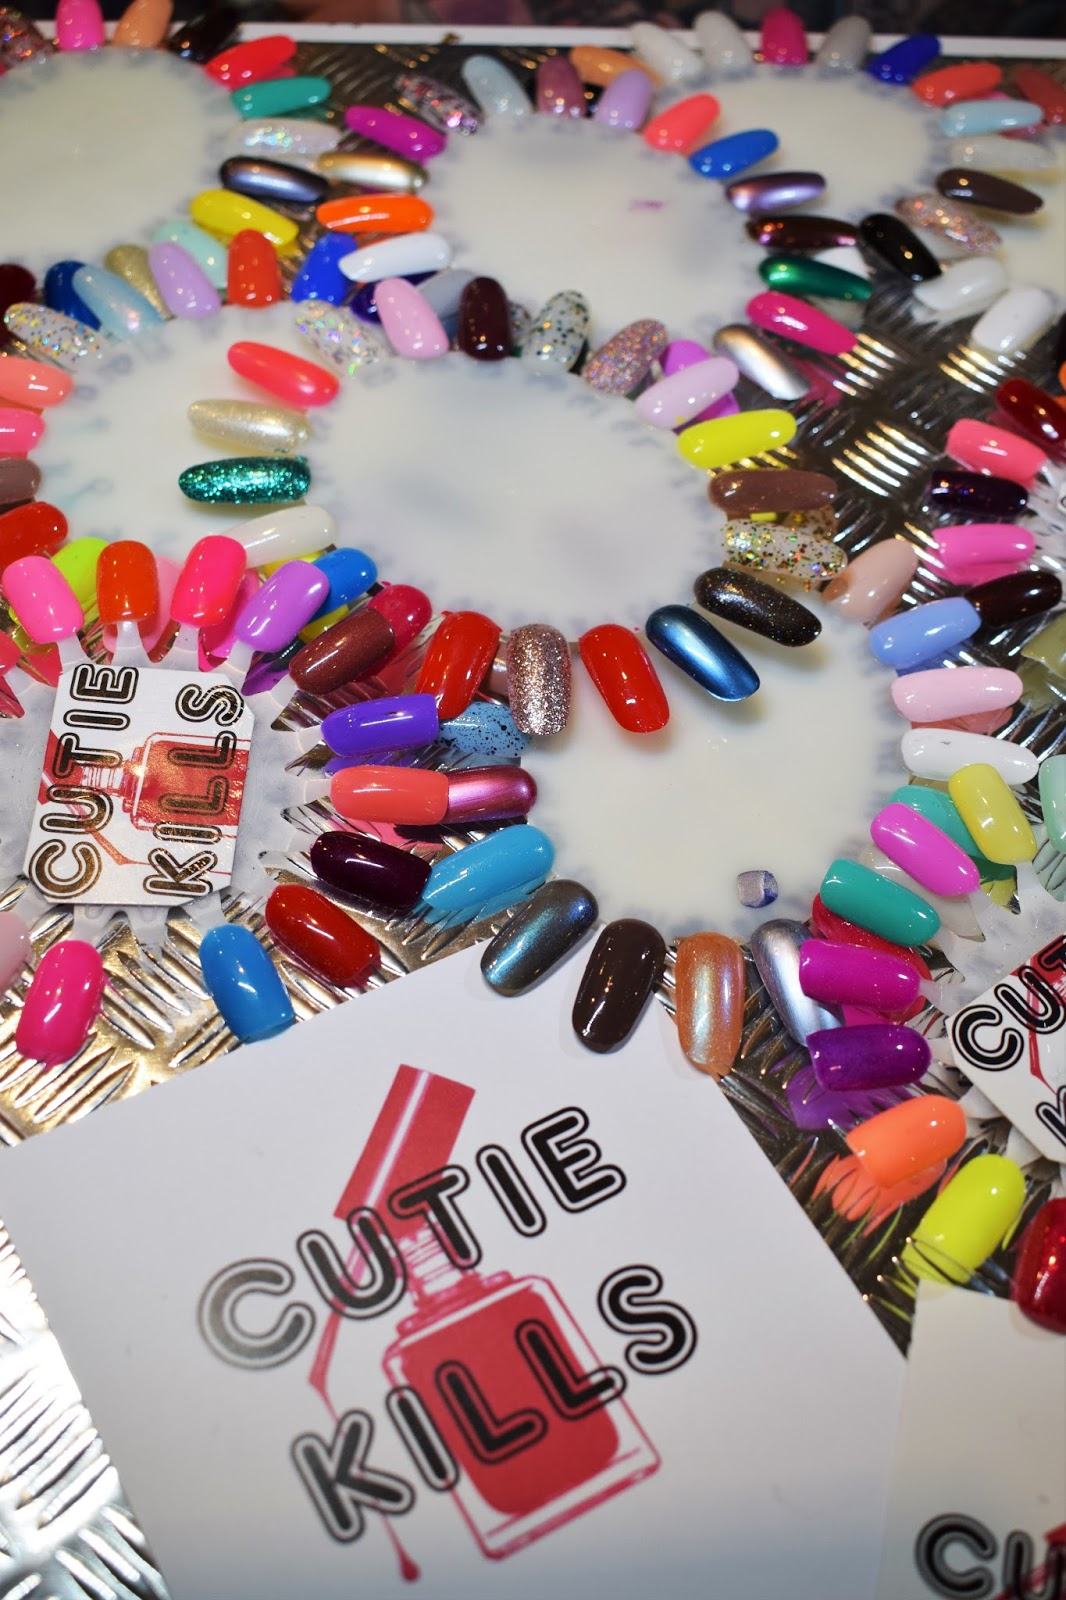 Cutie-Kills Nails, Zara Evry nail artist, Medusa Grassmarket, Edinburgh nail artist, gel polish colour, fashion blogger nails favourite